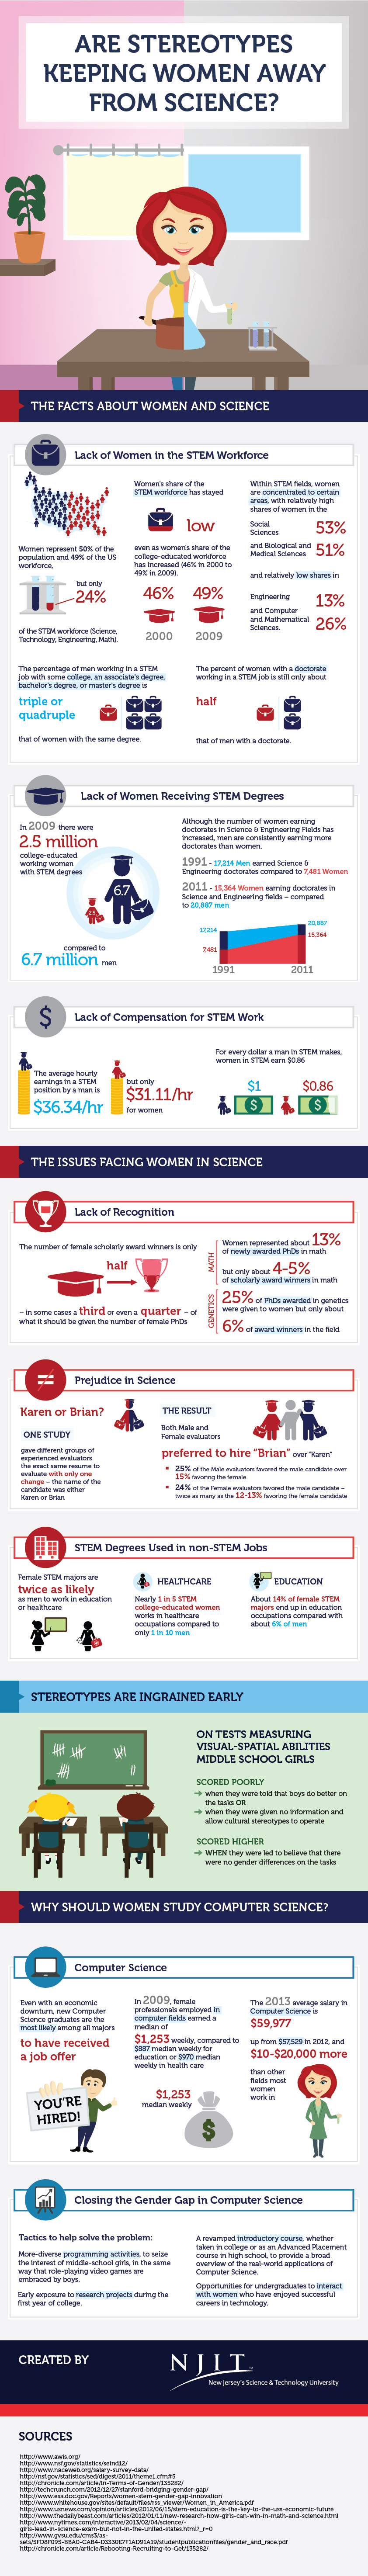 Are stereotypes keeping women away from science